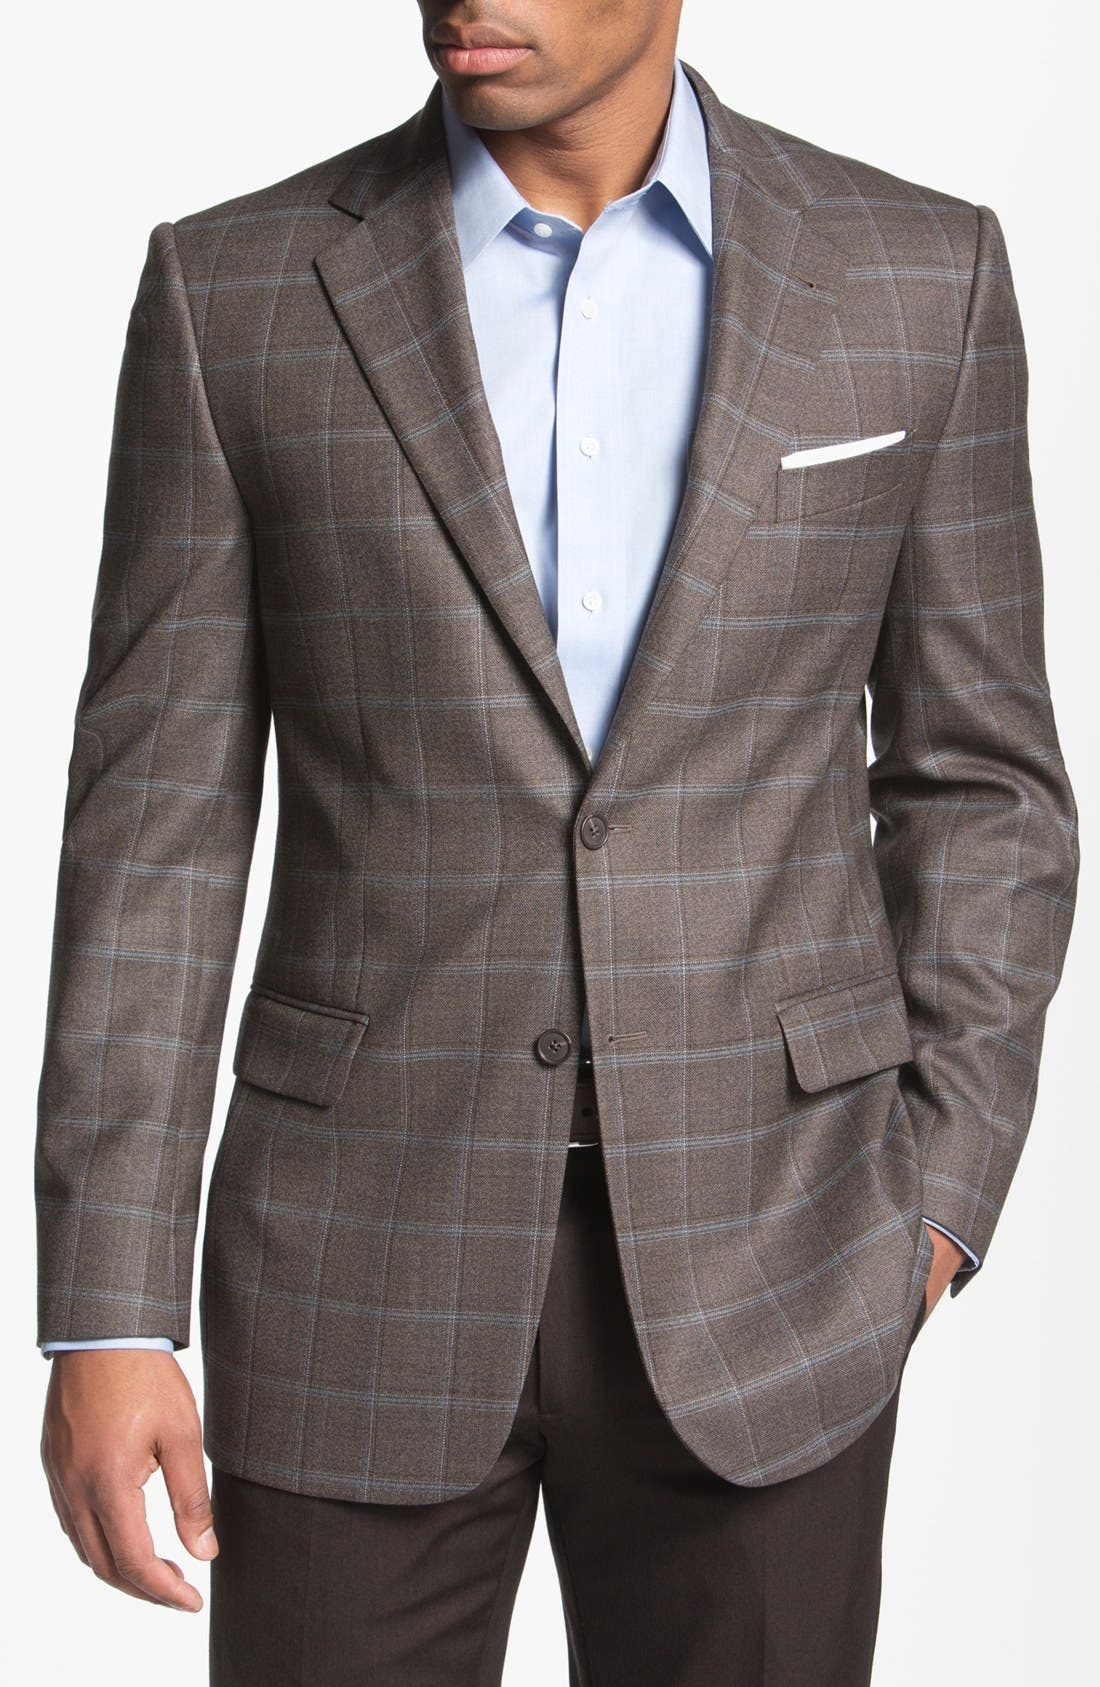 Alternate Image 1 Selected - Joseph Abboud 'Signature Silver' Plaid Wool Sportcoat (Online Only)